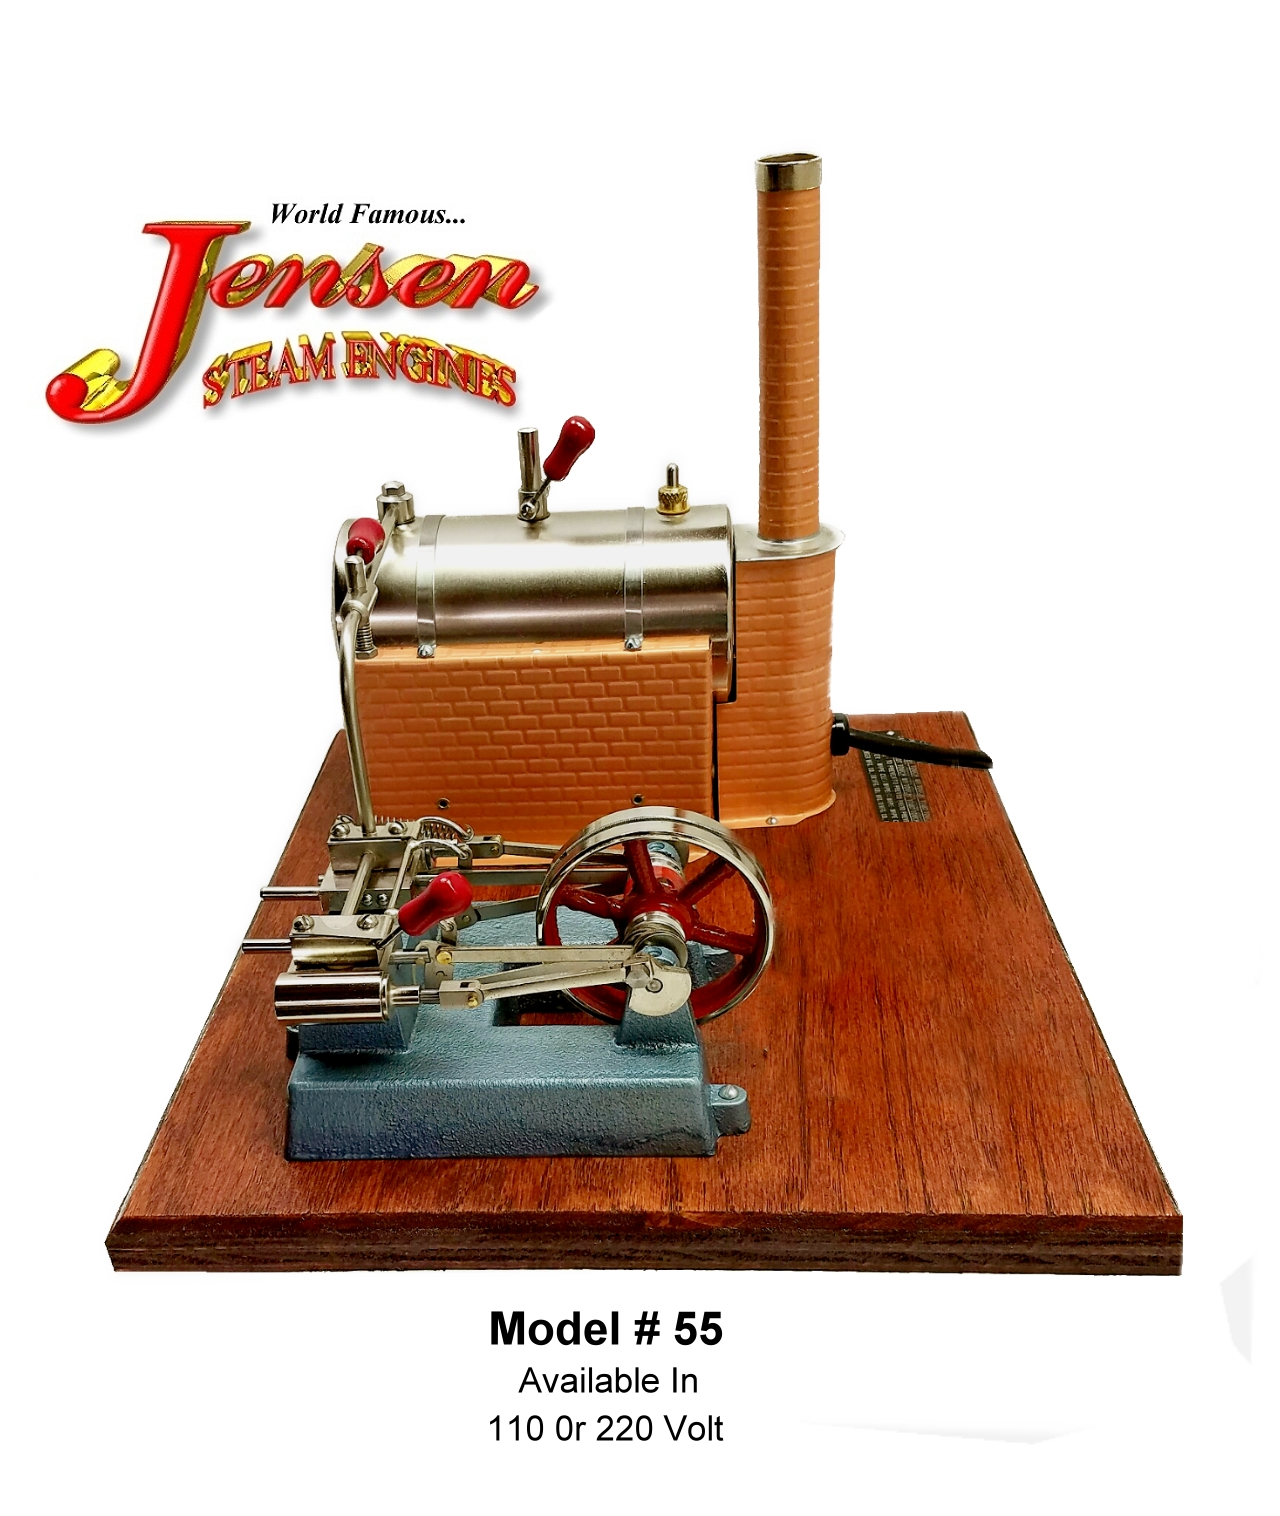 Jensen Hobby and Educational Steam Engines